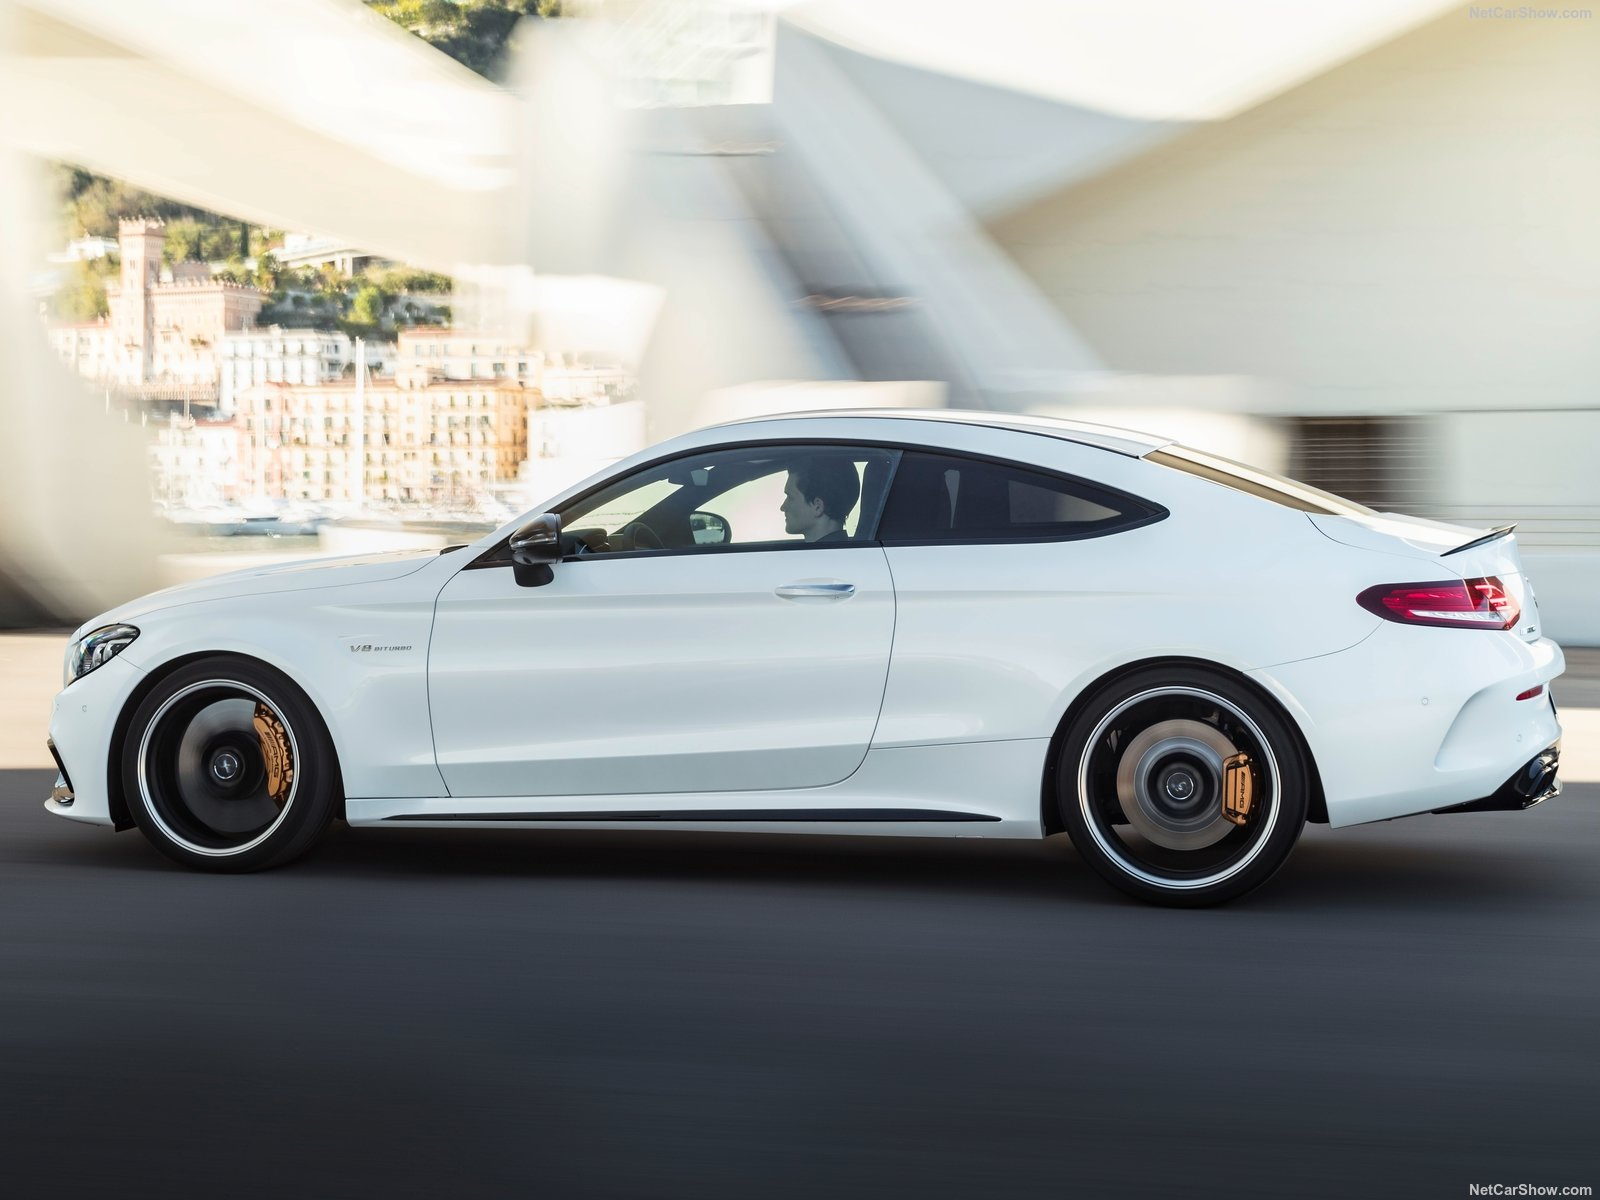 Mercedes-Benz C63 S AMG Coupe photo 187376